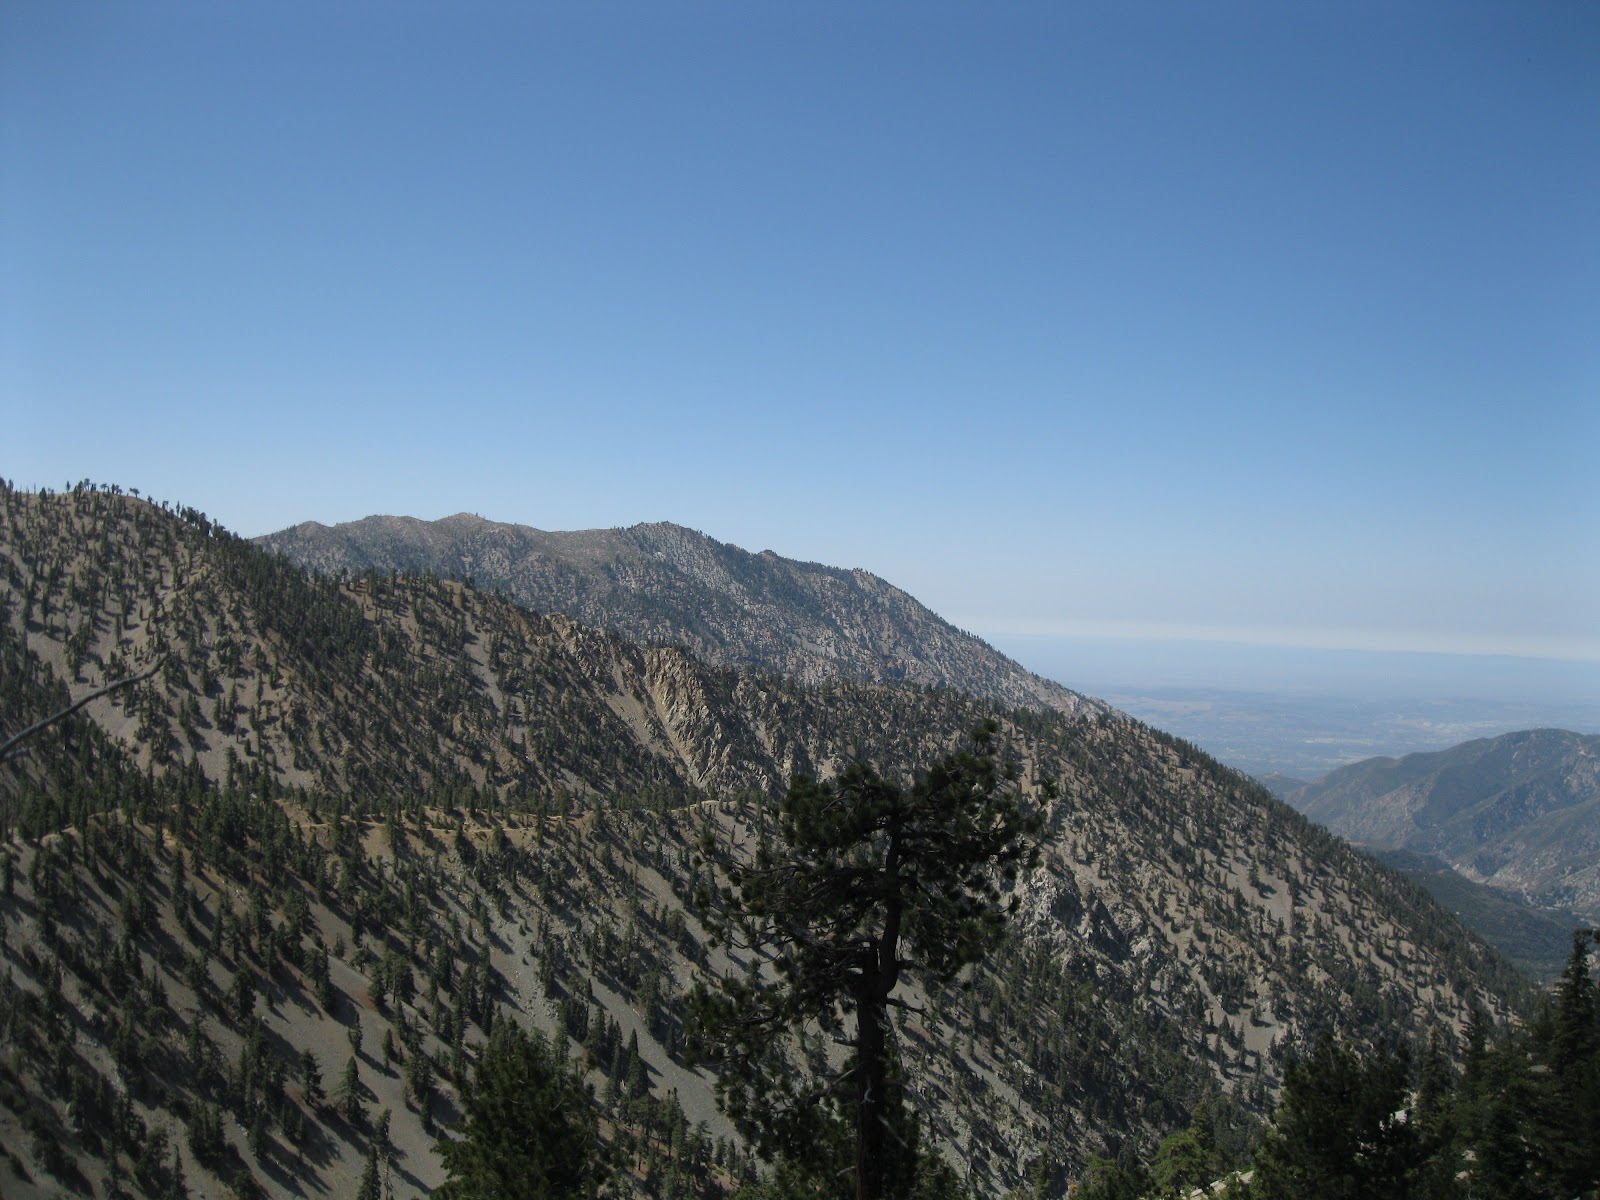 mt baldy Mount baldy or mt baldy, formerly camp baynham and camp baldy, is an unincorporated community in the san gabriel mountains, in san bernardino county near the eastern border of los angeles county, in southern california.